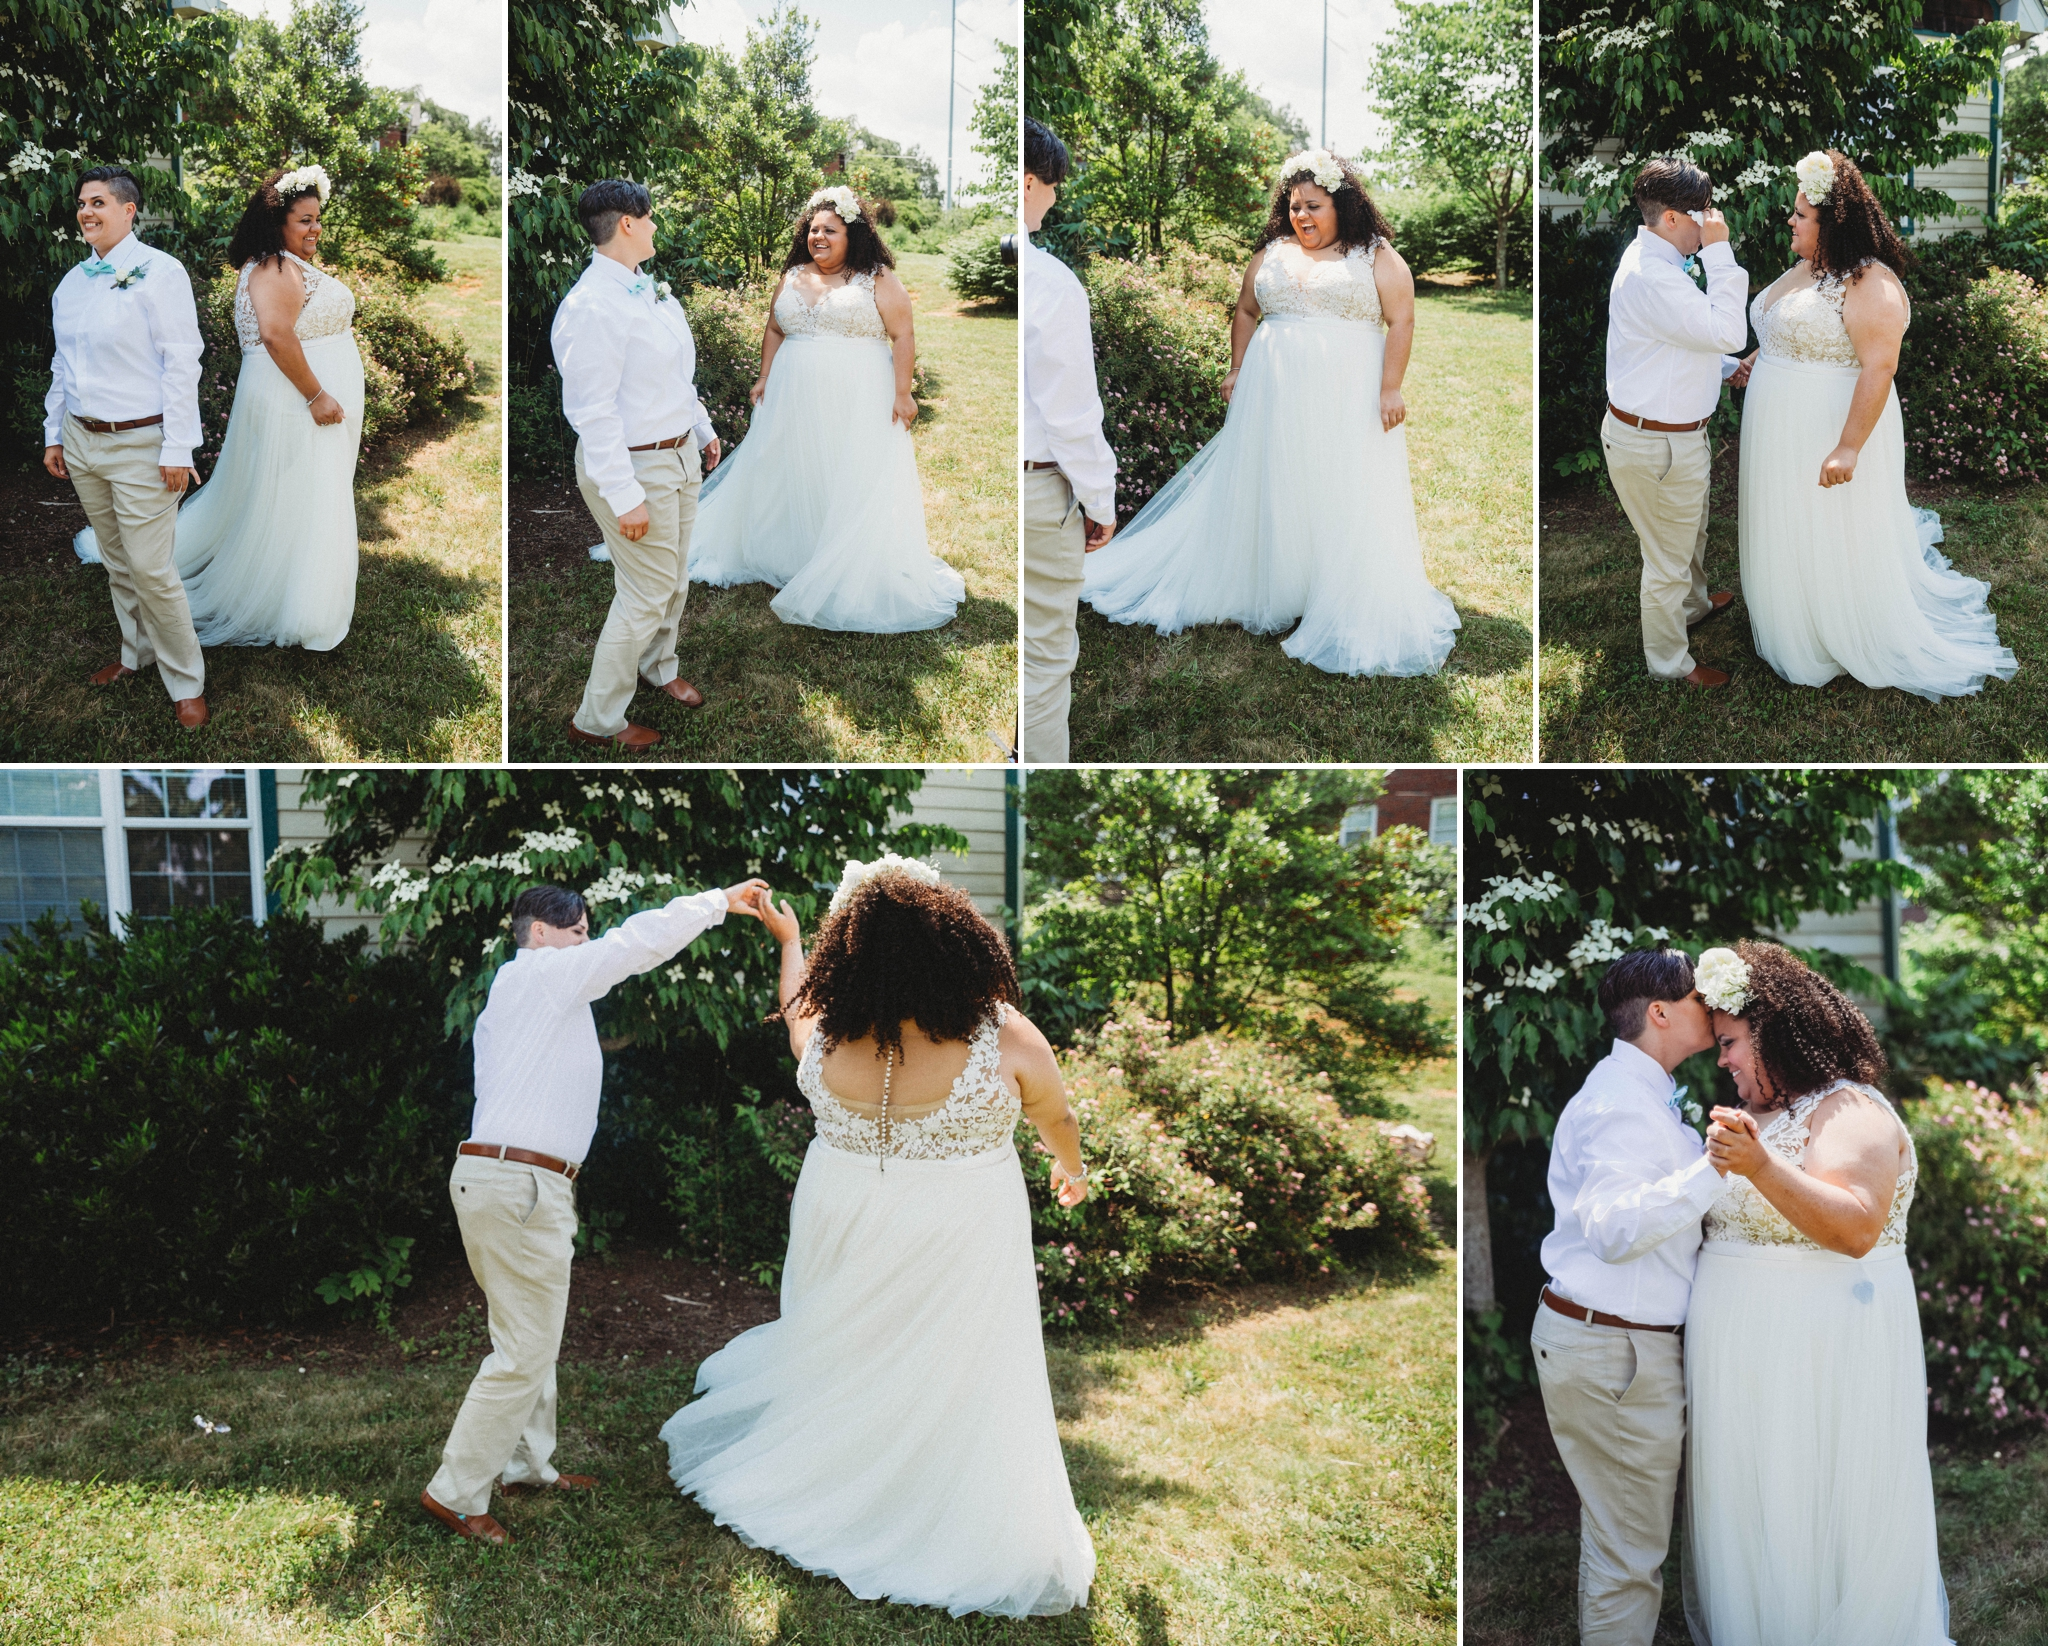 Mercedes + Nicole - Same Sex Wedding at a Waterfall and the Grand Bohemian Hotel in Asheville, North Carolina 8.jpg